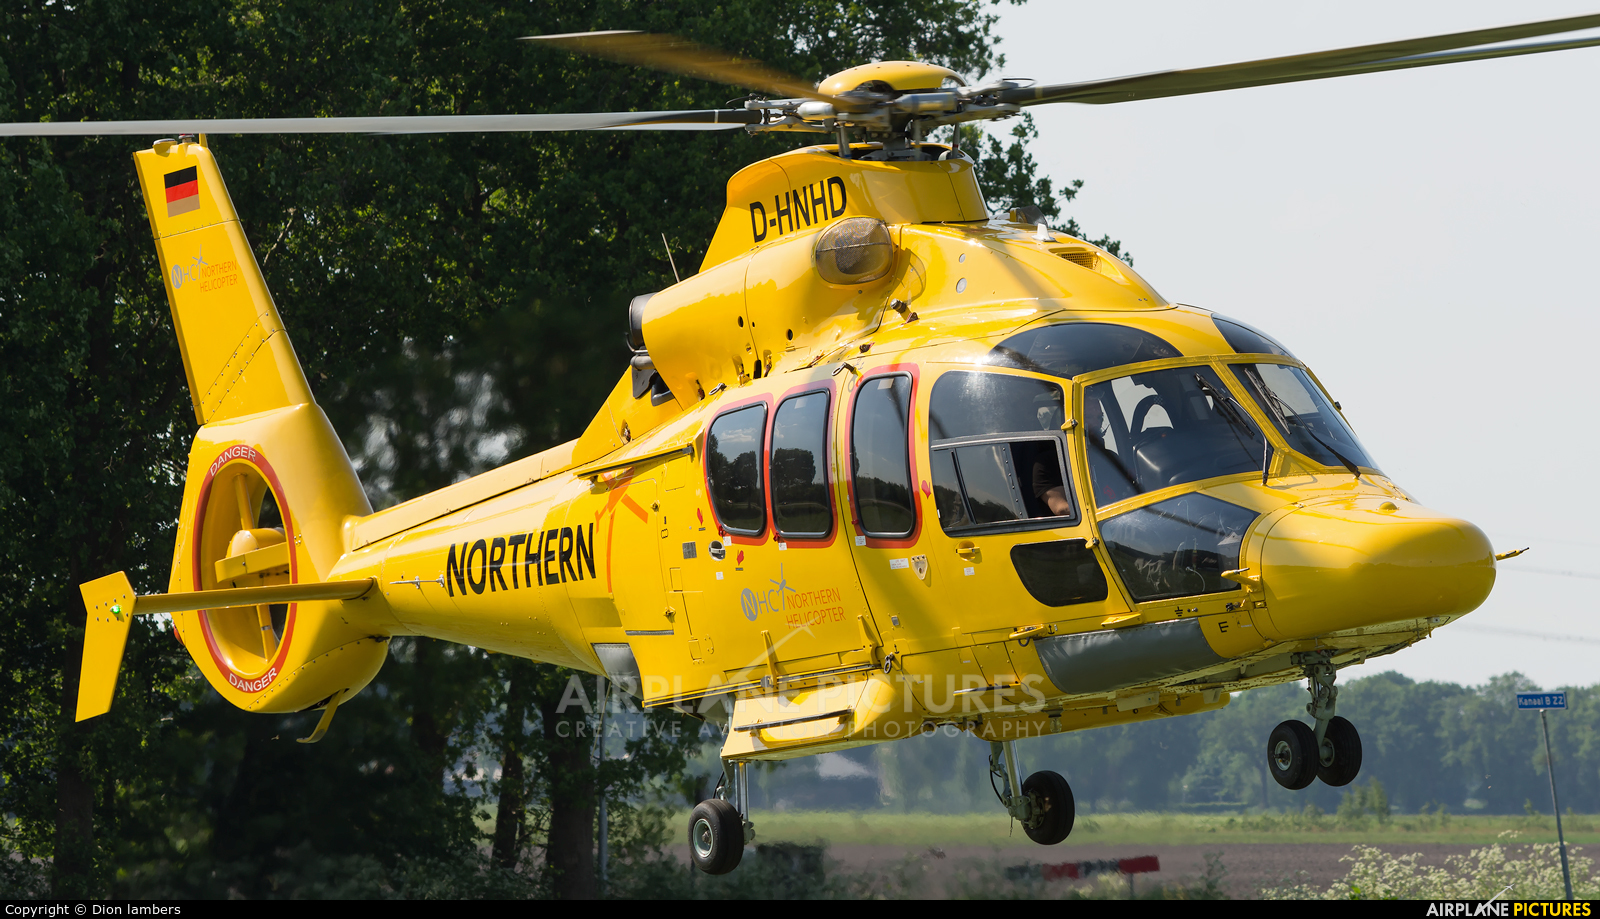 Northern Helicopters D-HNHD aircraft at Heli-port Emmen